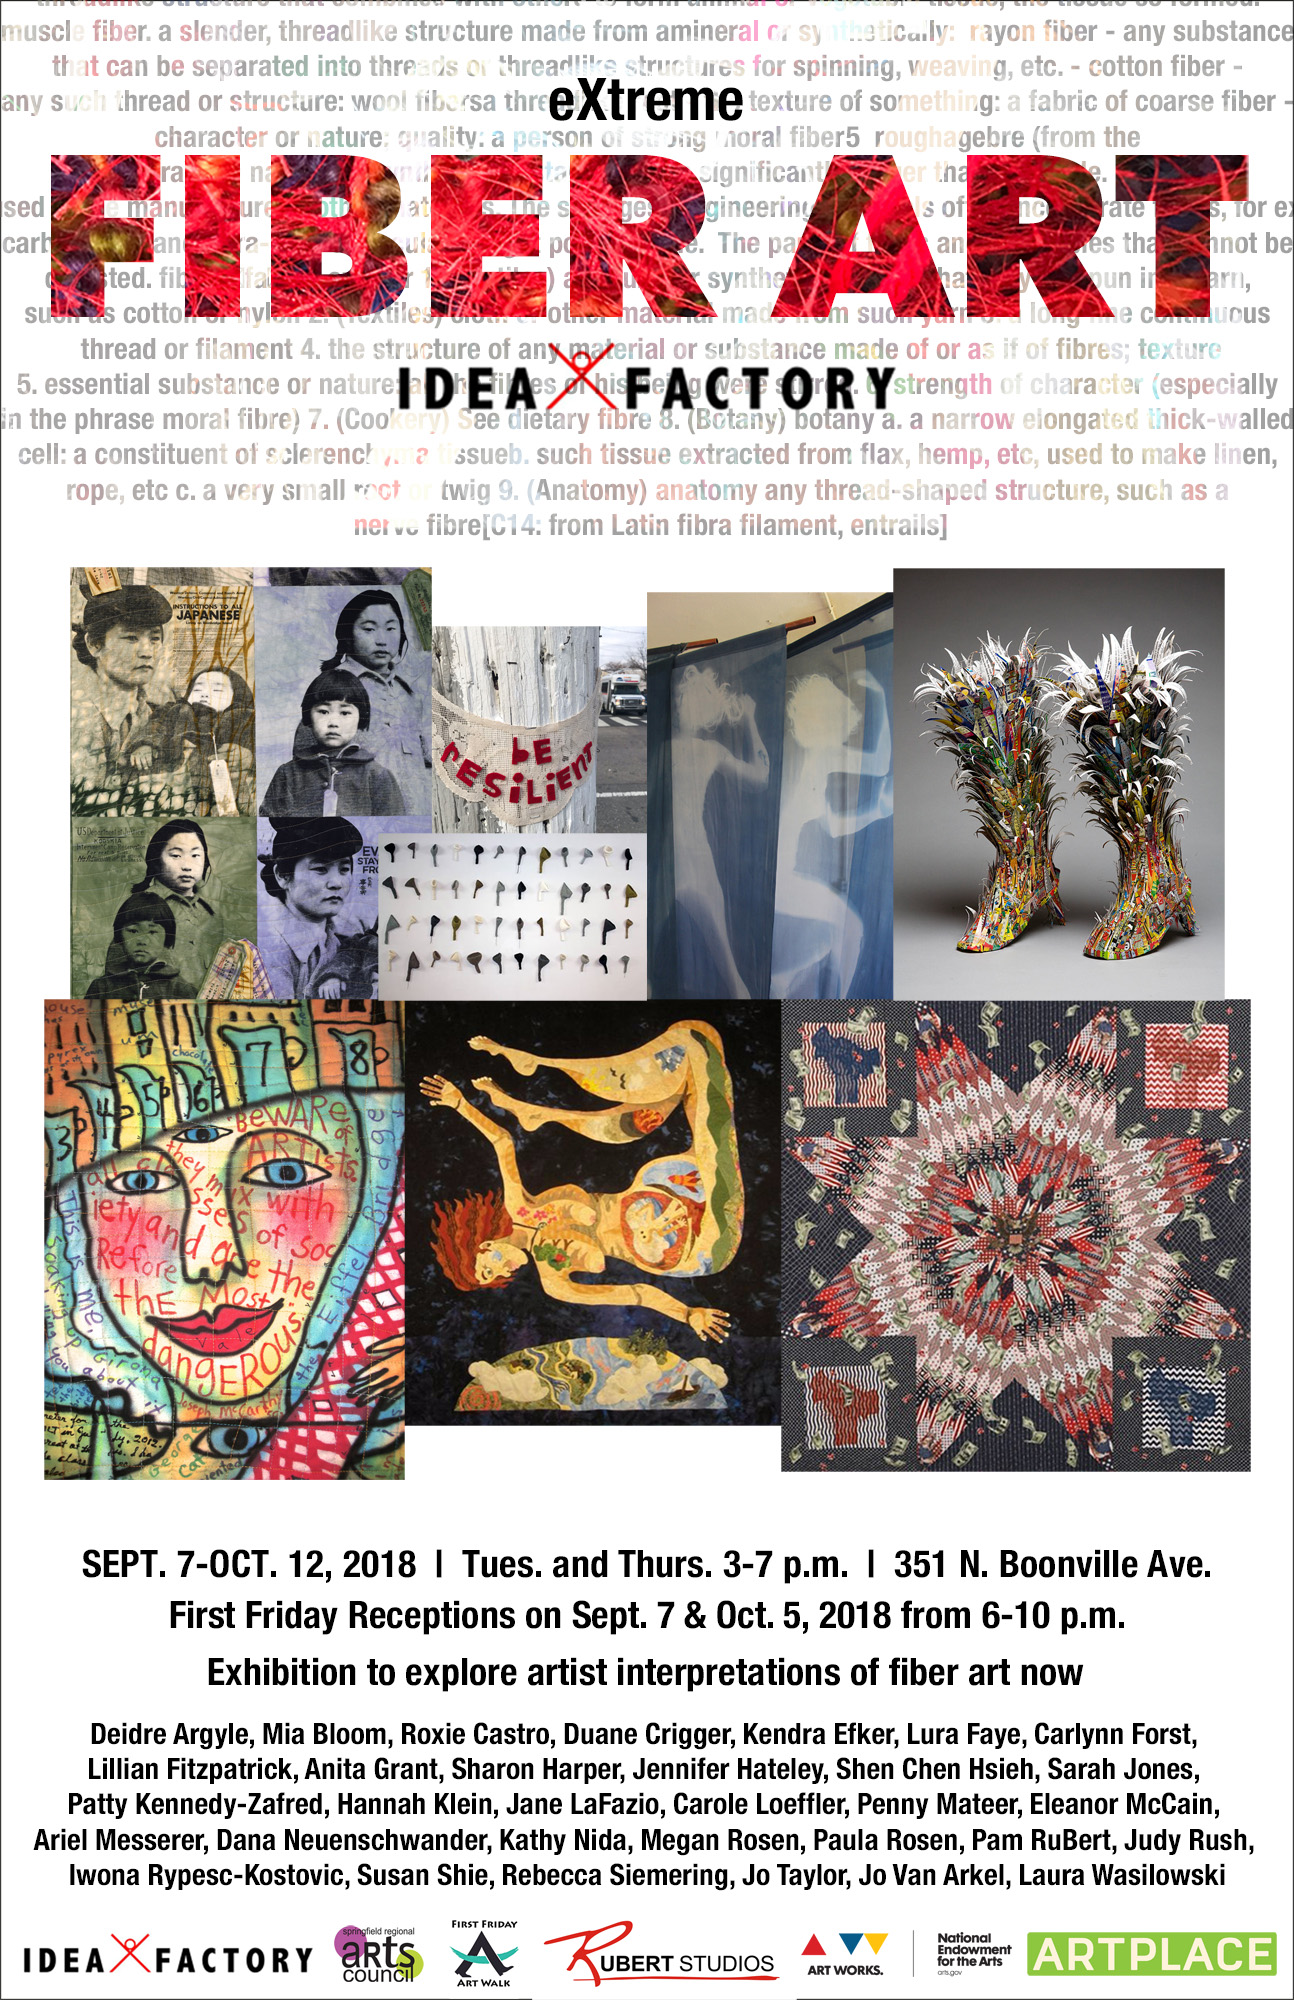 Extreme Fiber Art Exhibition Sept 7 Oct 12 Ideaxfactory